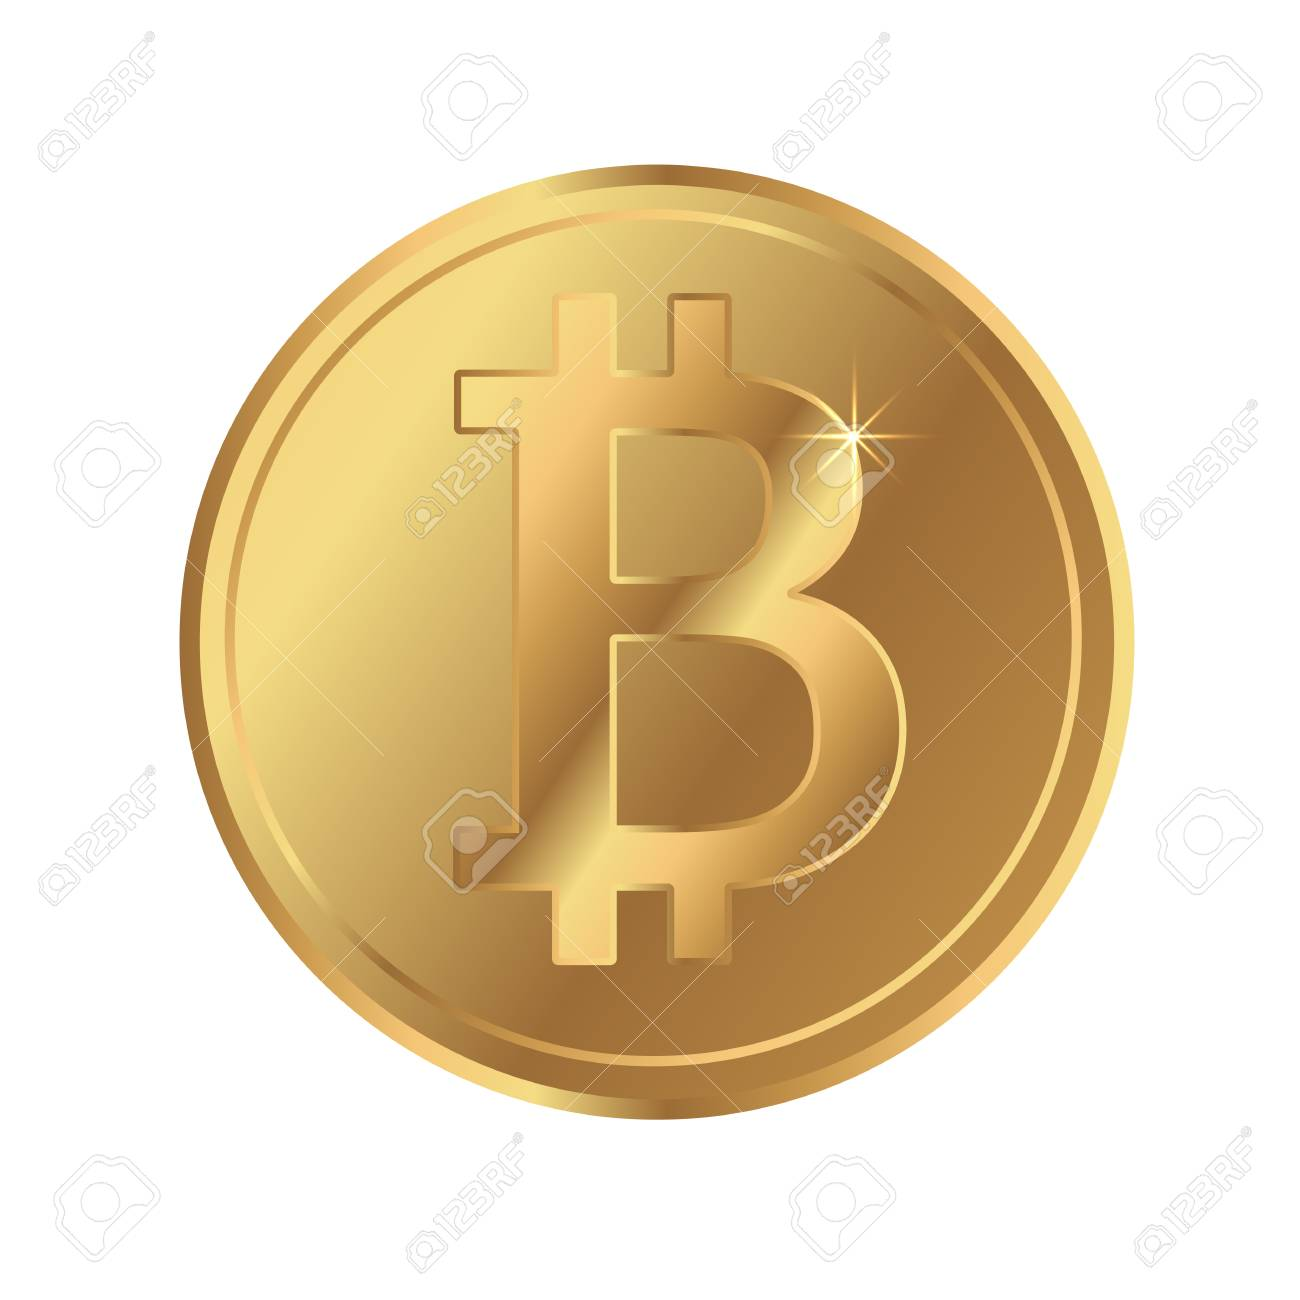 Bitcoin blockchain network cryptocurrency icon btc sign symbol bitcoin blockchain network cryptocurrency icon btc sign symbol coin gold gradient web internet money biocorpaavc Images